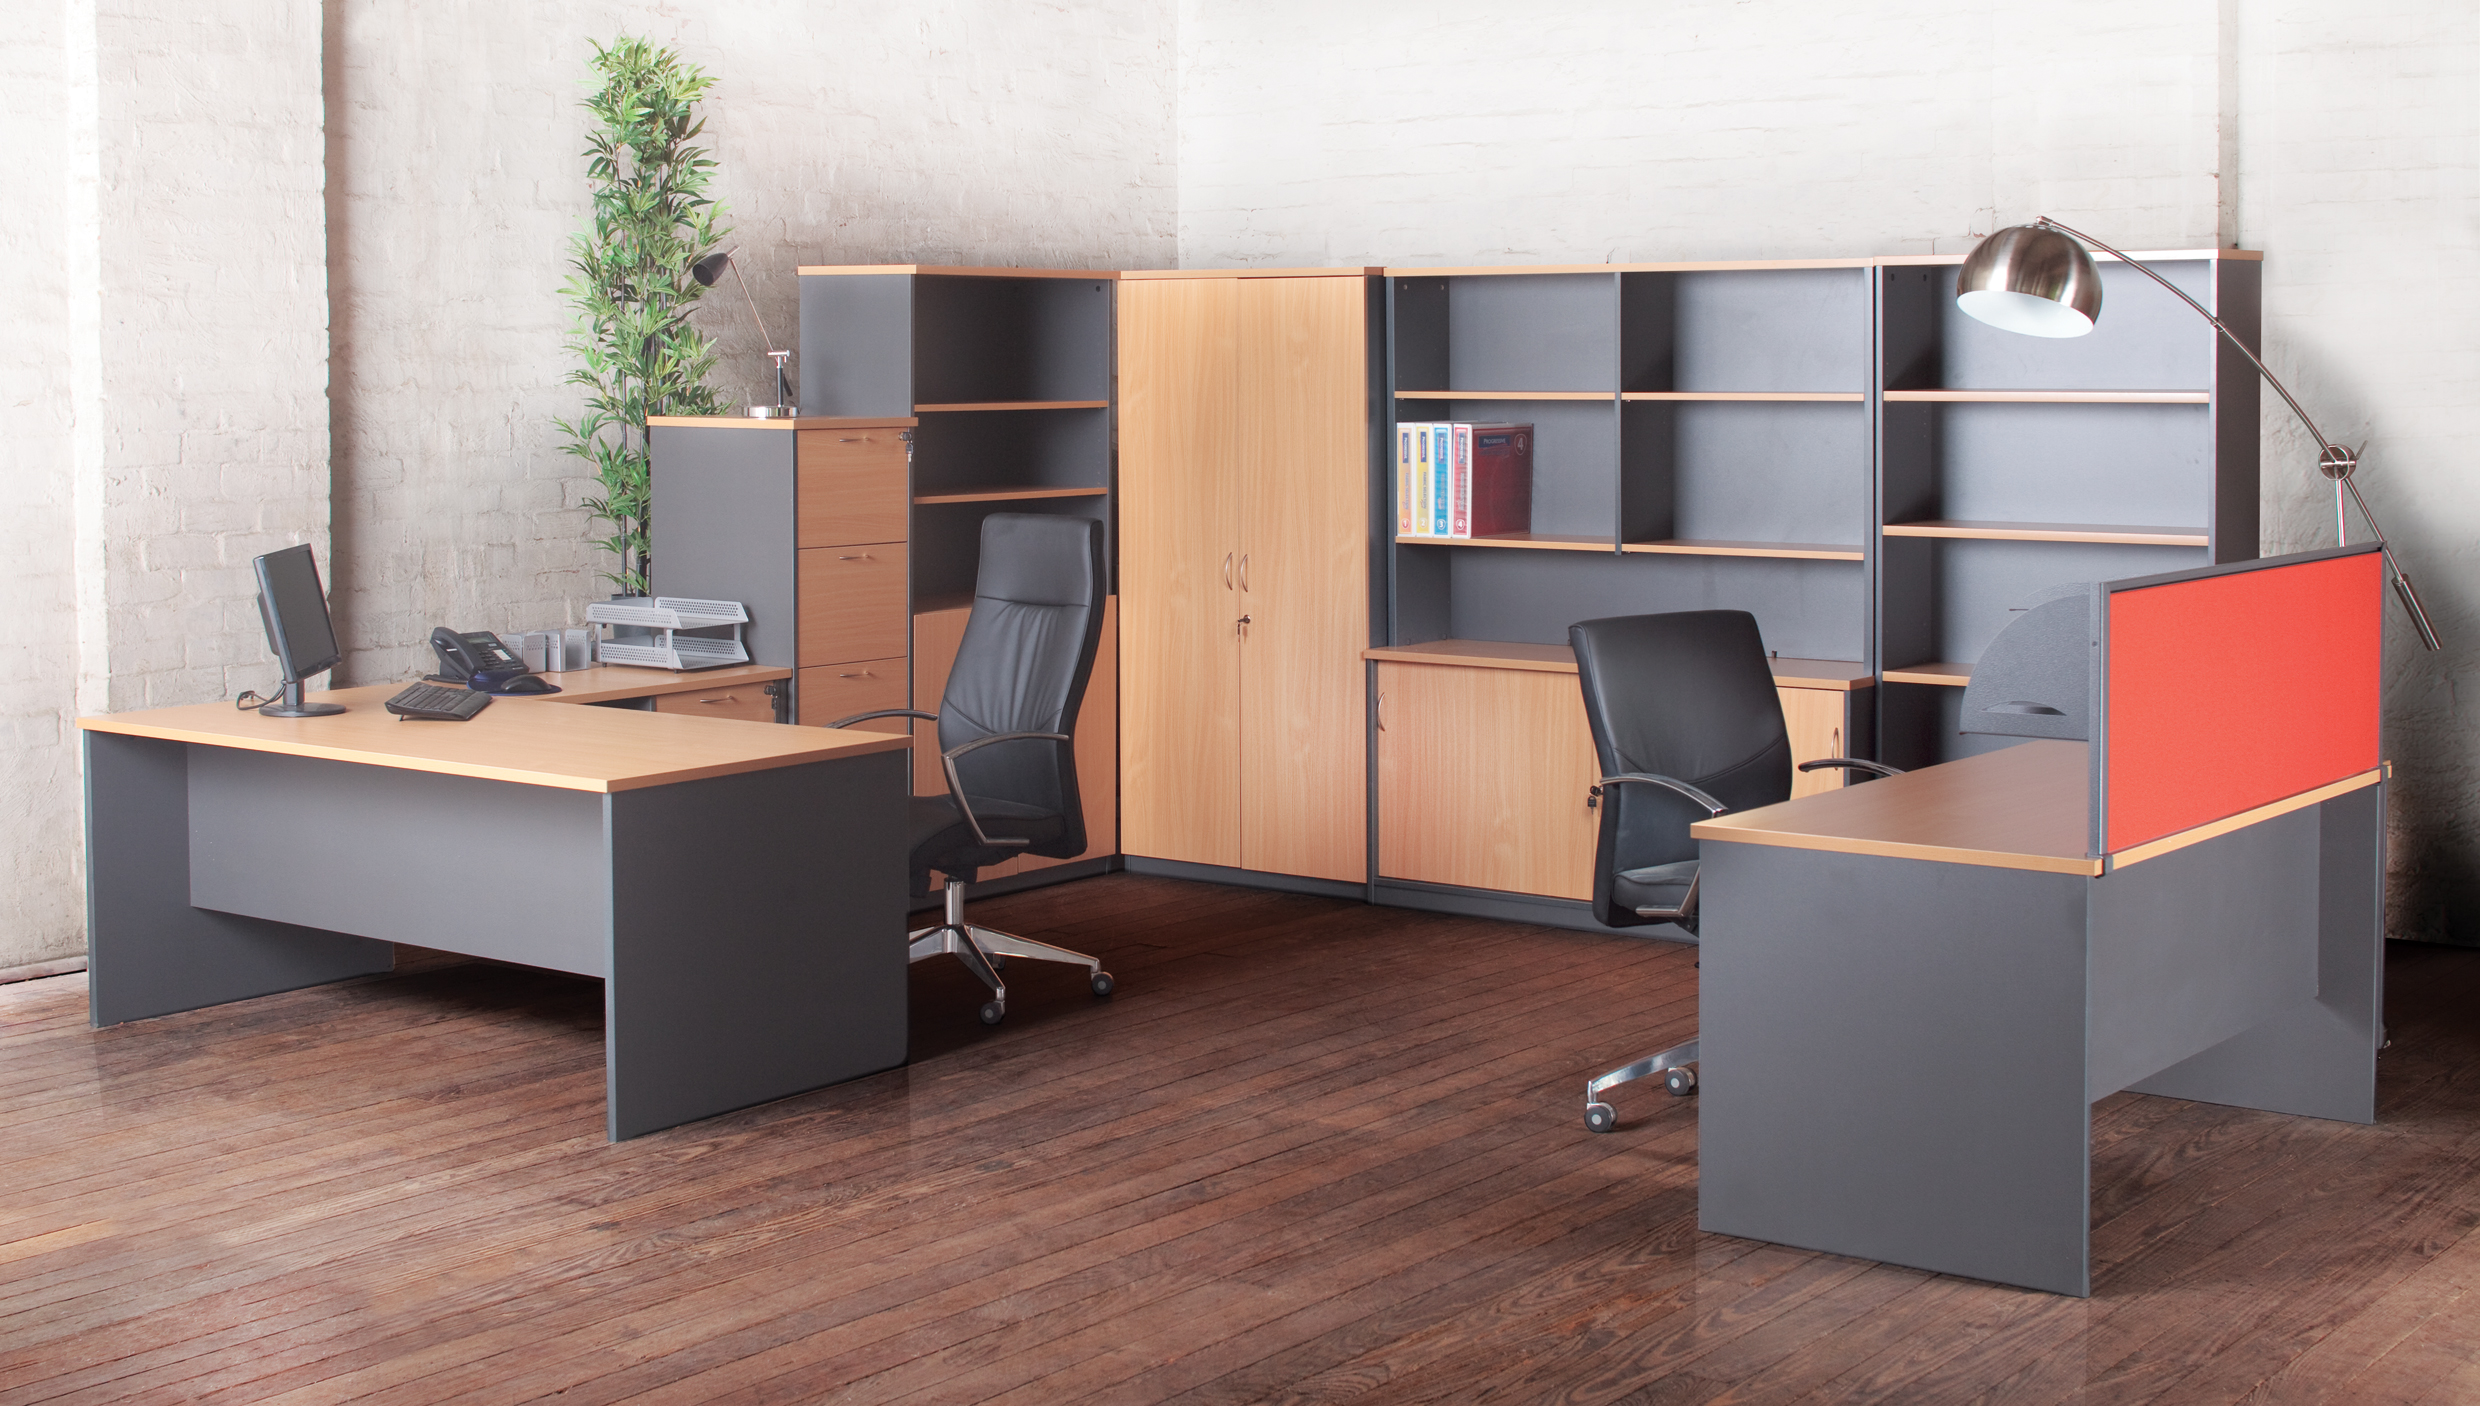 Office Furniture Store Dubai  Online Office Furniture Store Dubai UAE